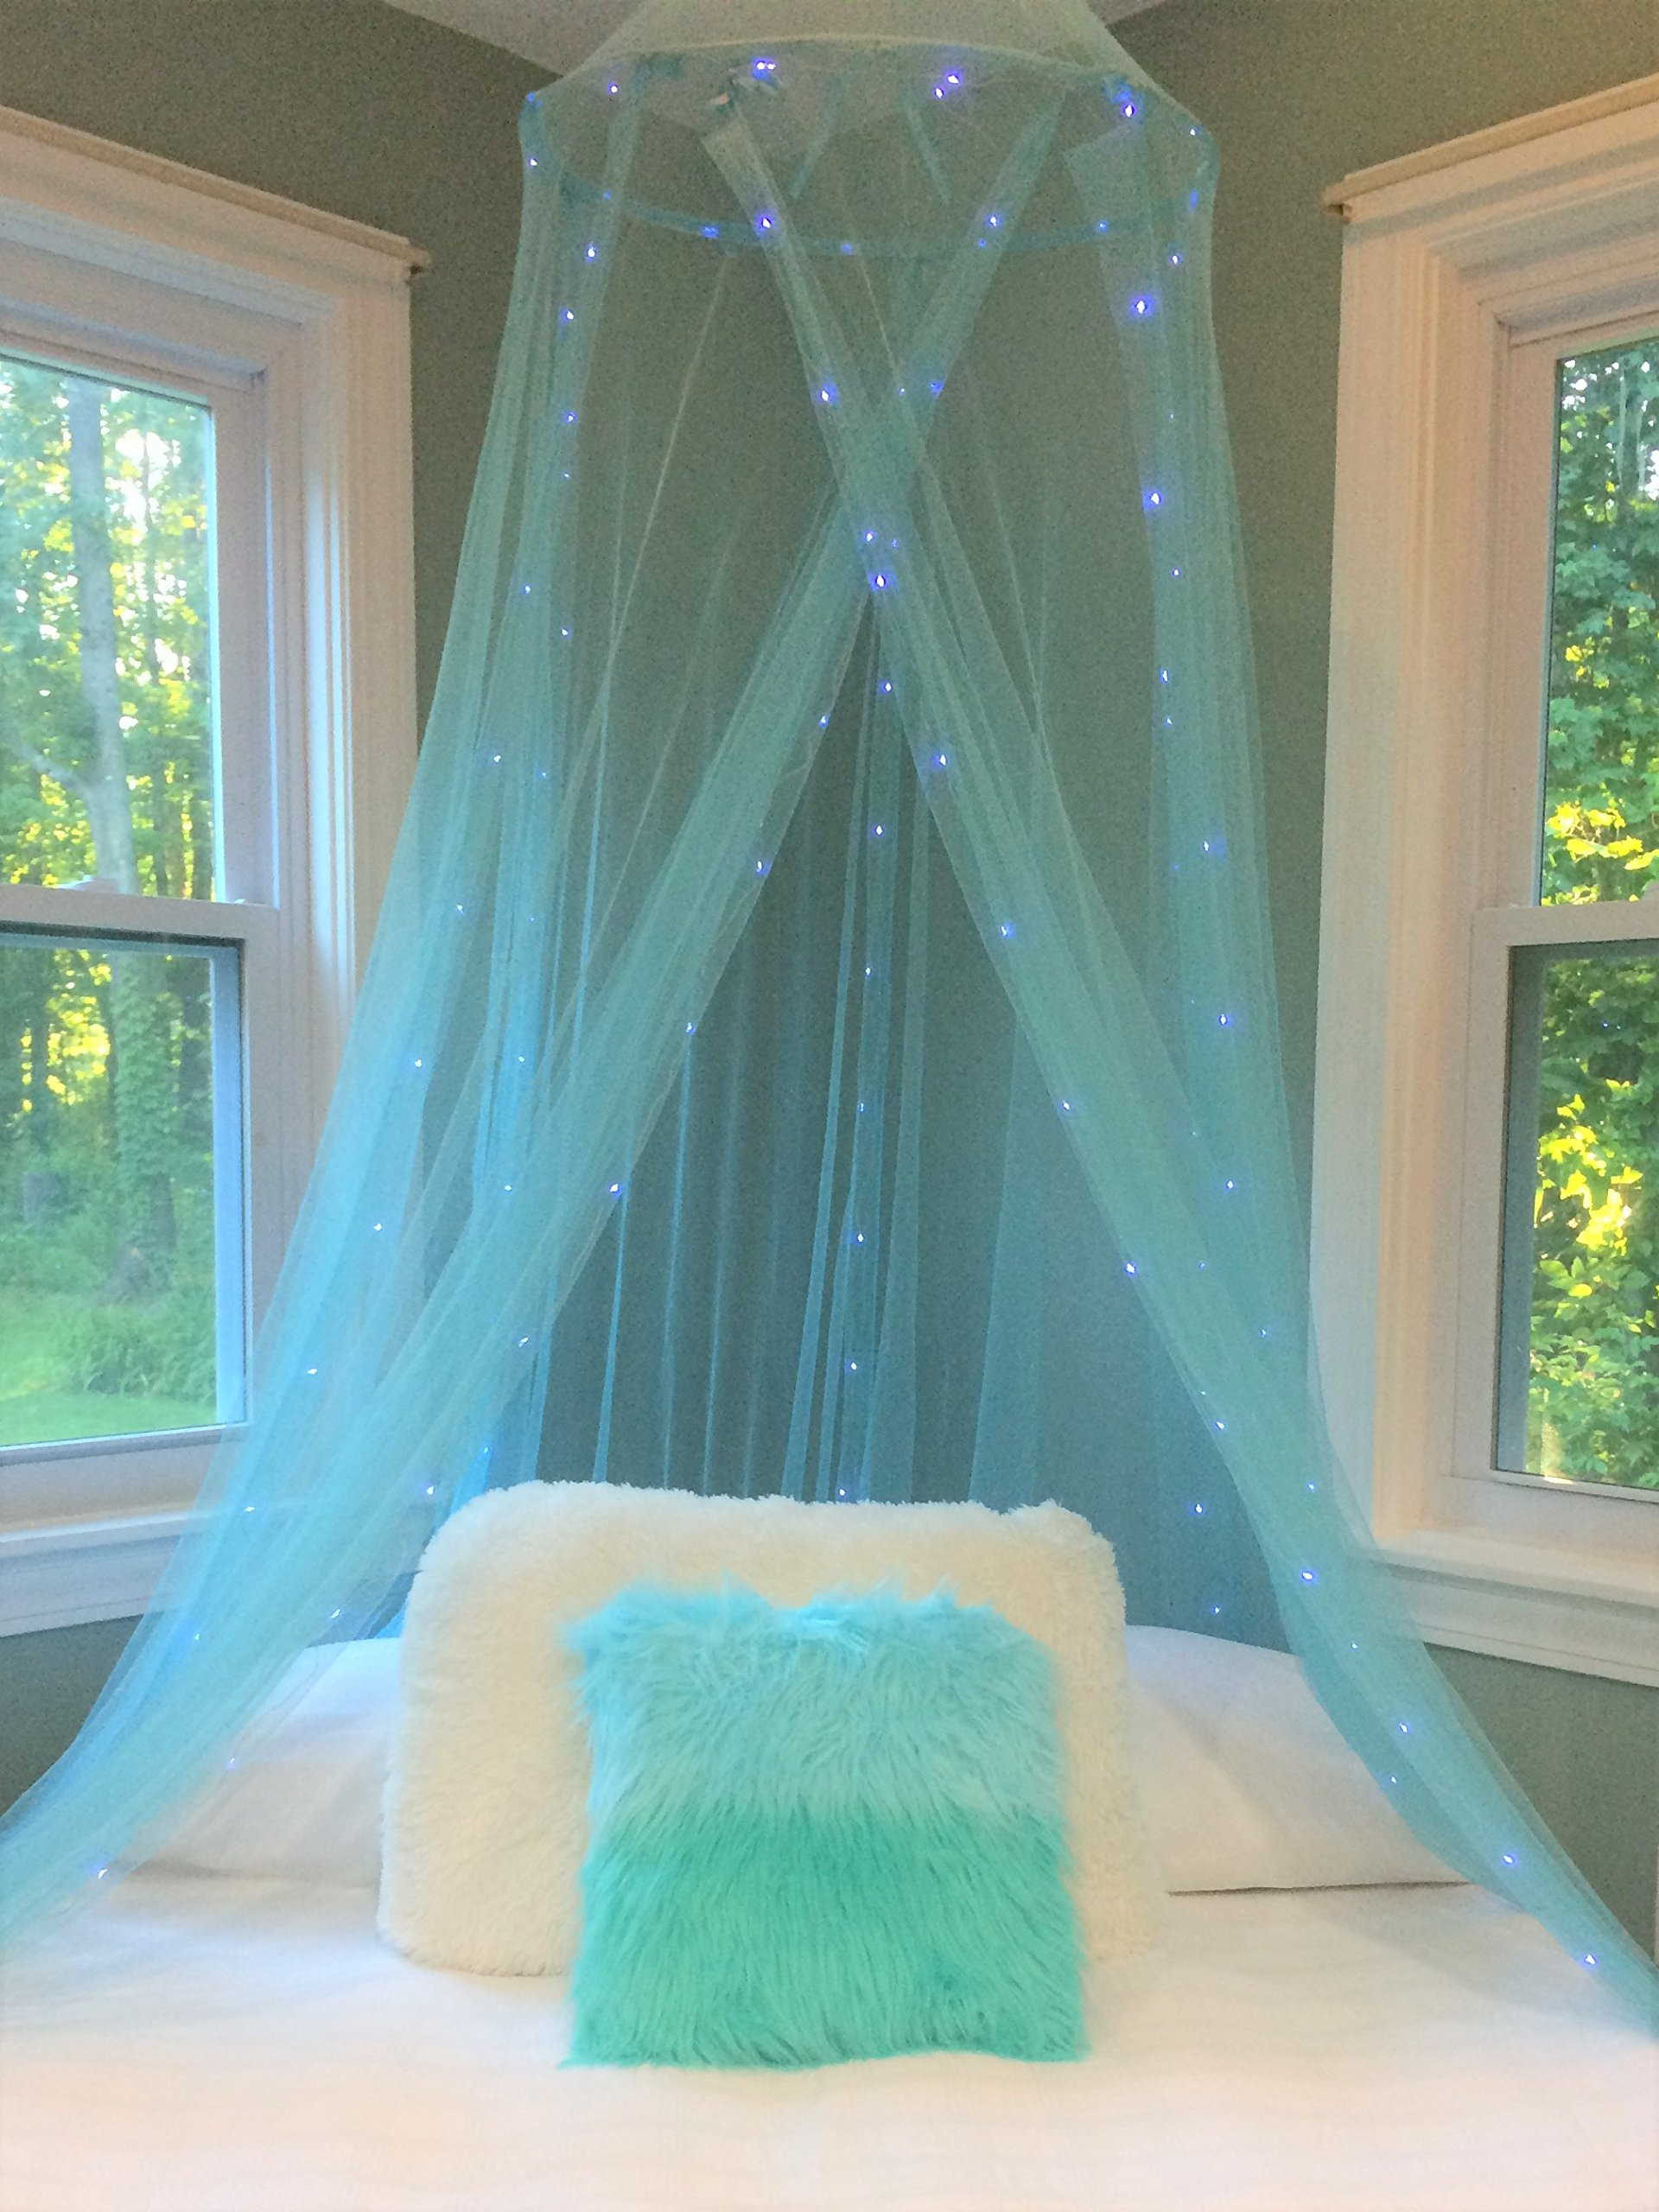 Pearls and Pixie Dust Deluxe Bed Canopy With Shimmering Lights (Turquoise)